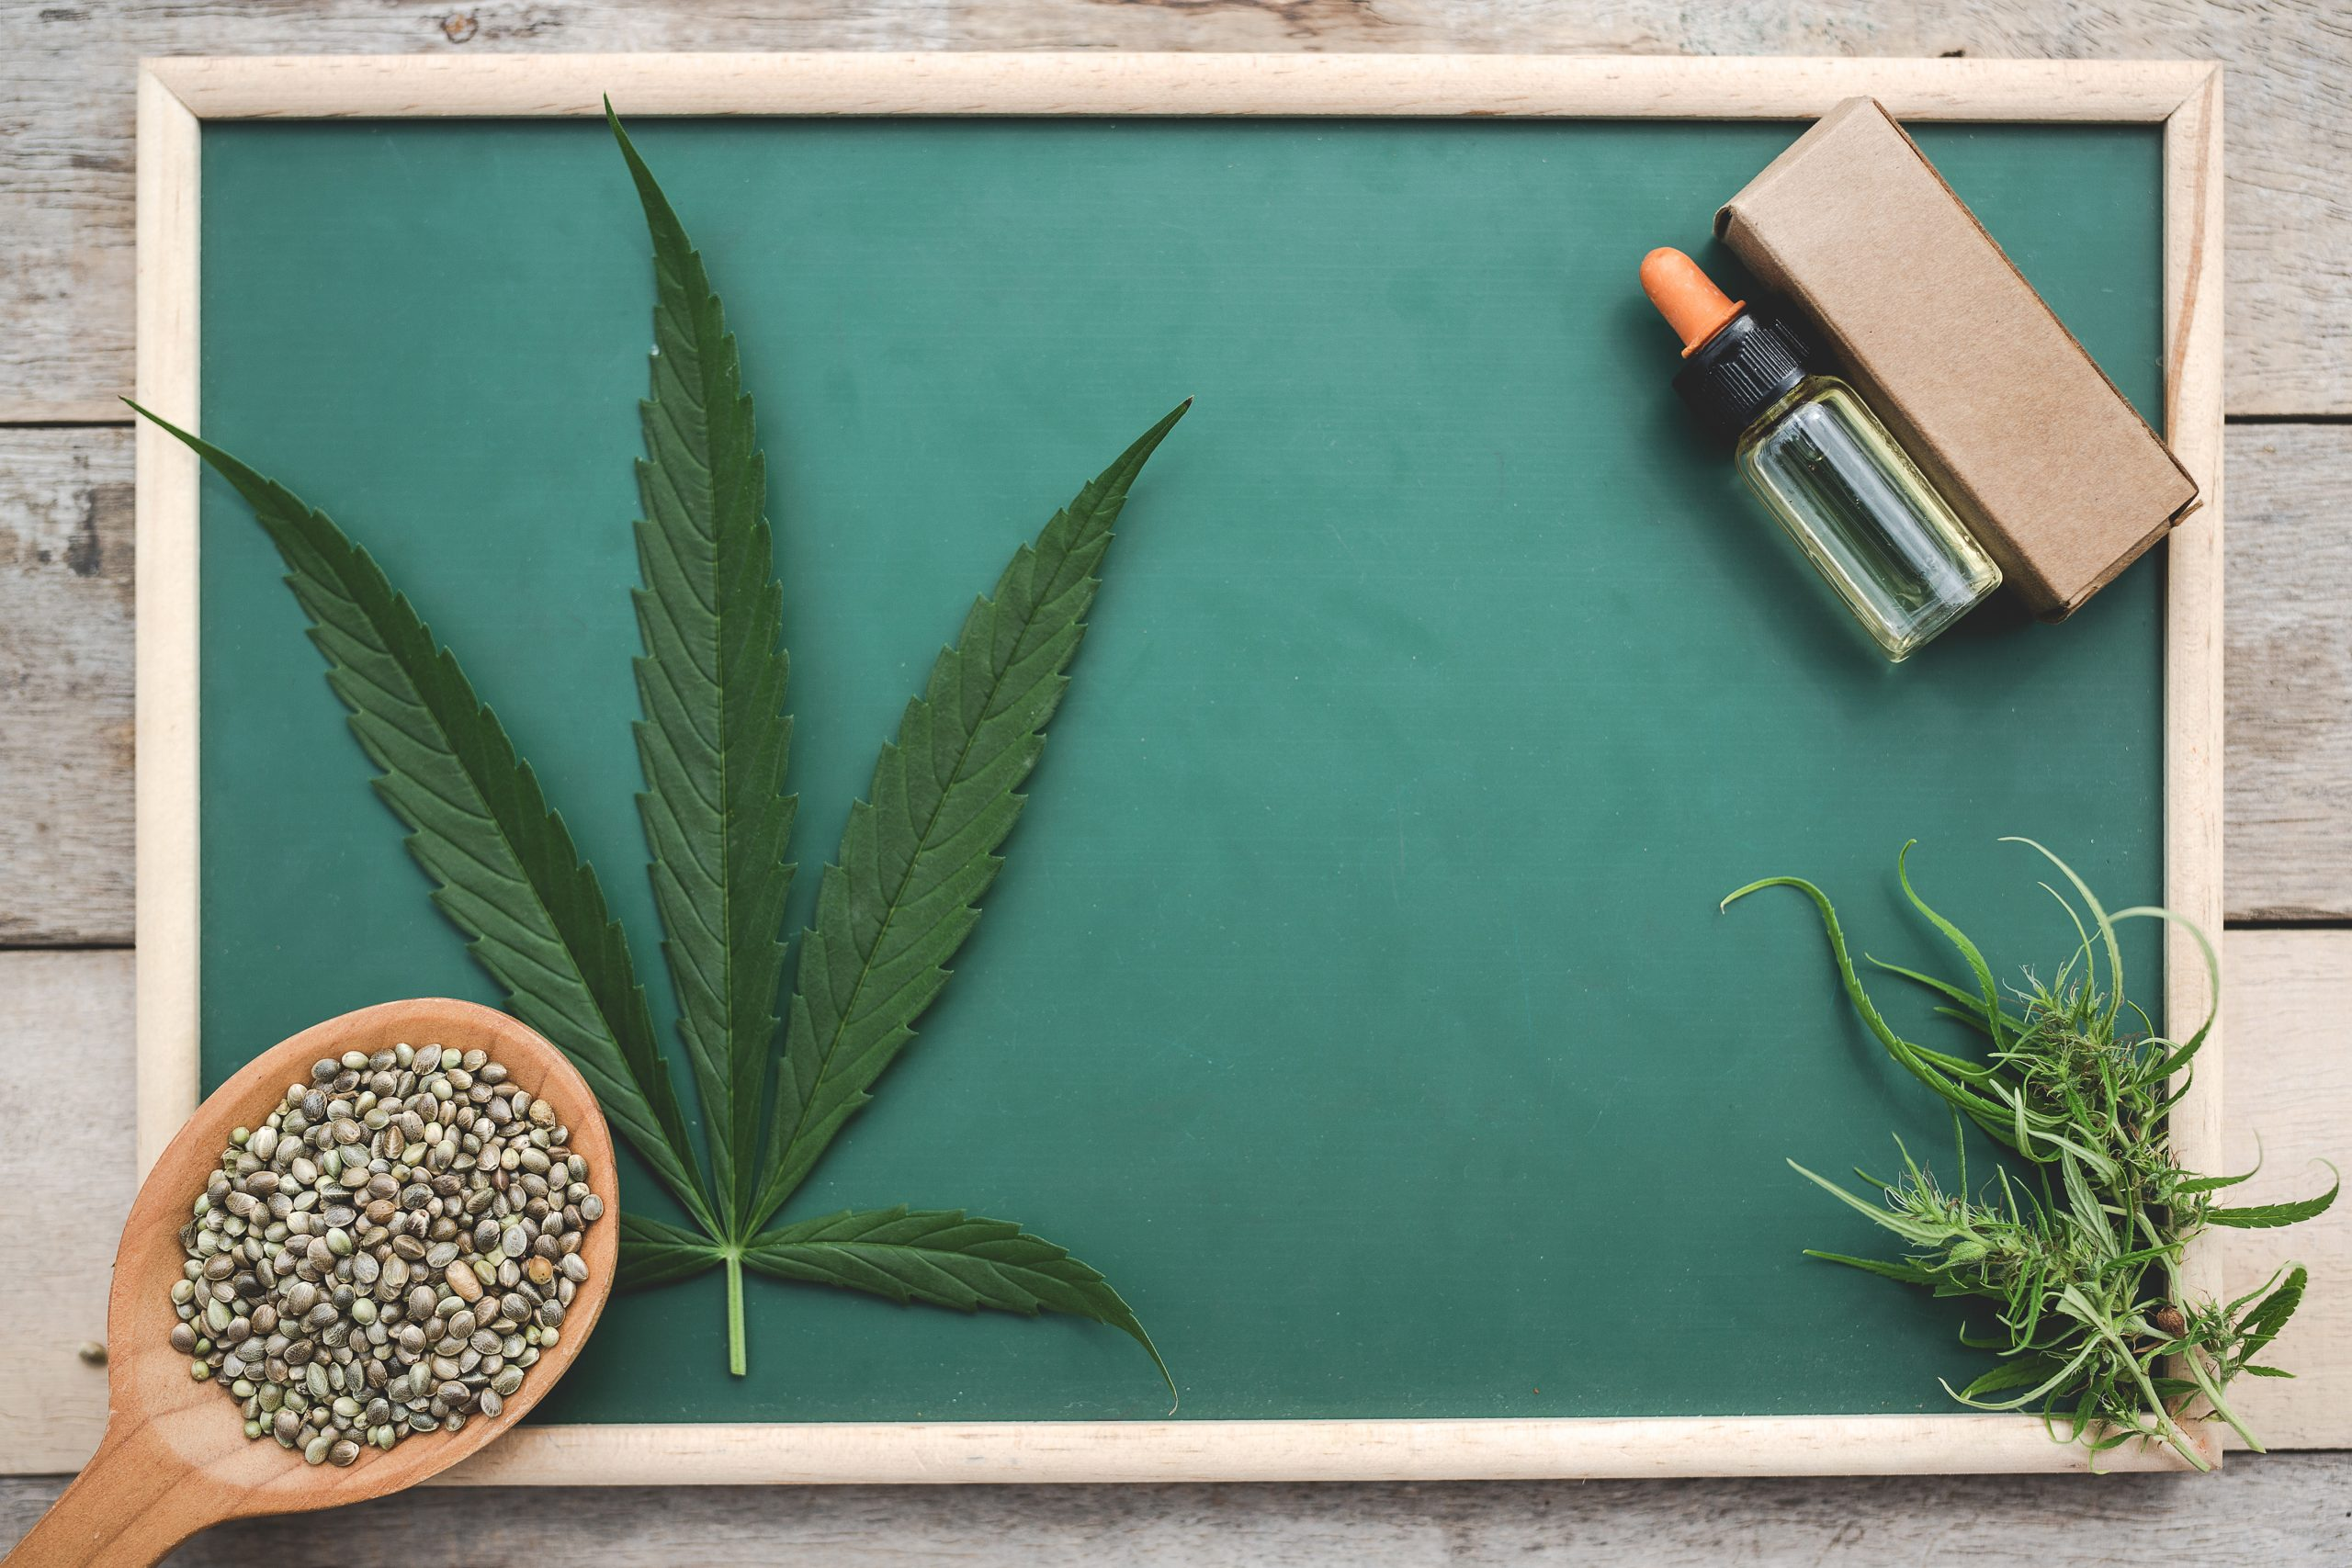 Cannabis oil Placed on a green board on a wooden